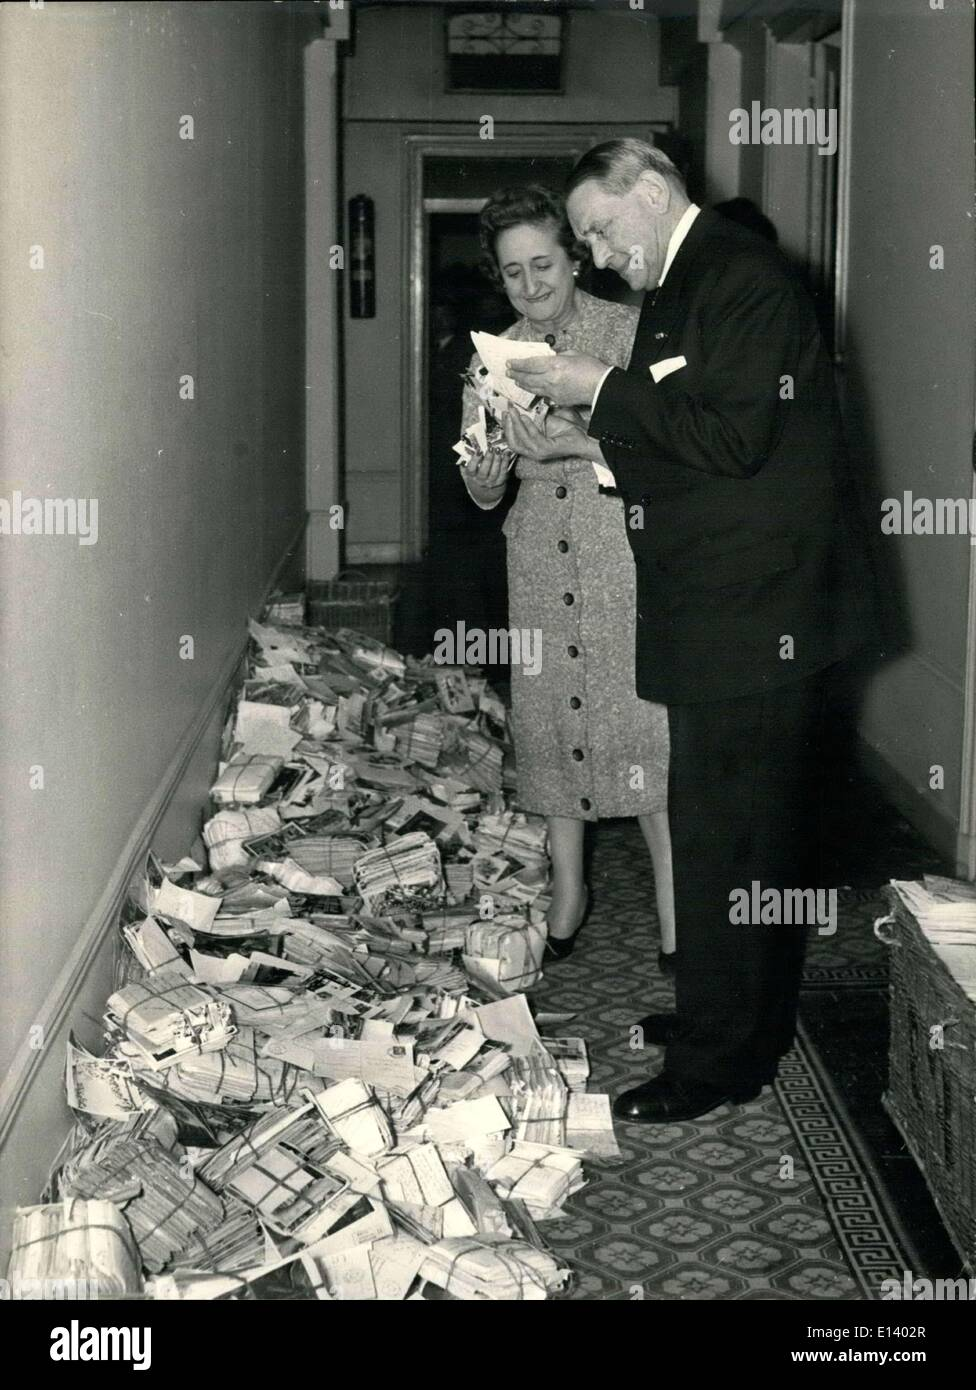 Mar. 31, 2012 - One Million of Cards: ''Thank You M. Coty'' Everyday M. Rene Coty receives thousands of cards with ''Thank You M. Coty''. Those cards are sent by the auditors of a French Broadcasting Radio Luxembourg. OPS: M. Coty reading some of the cards. - Stock Image